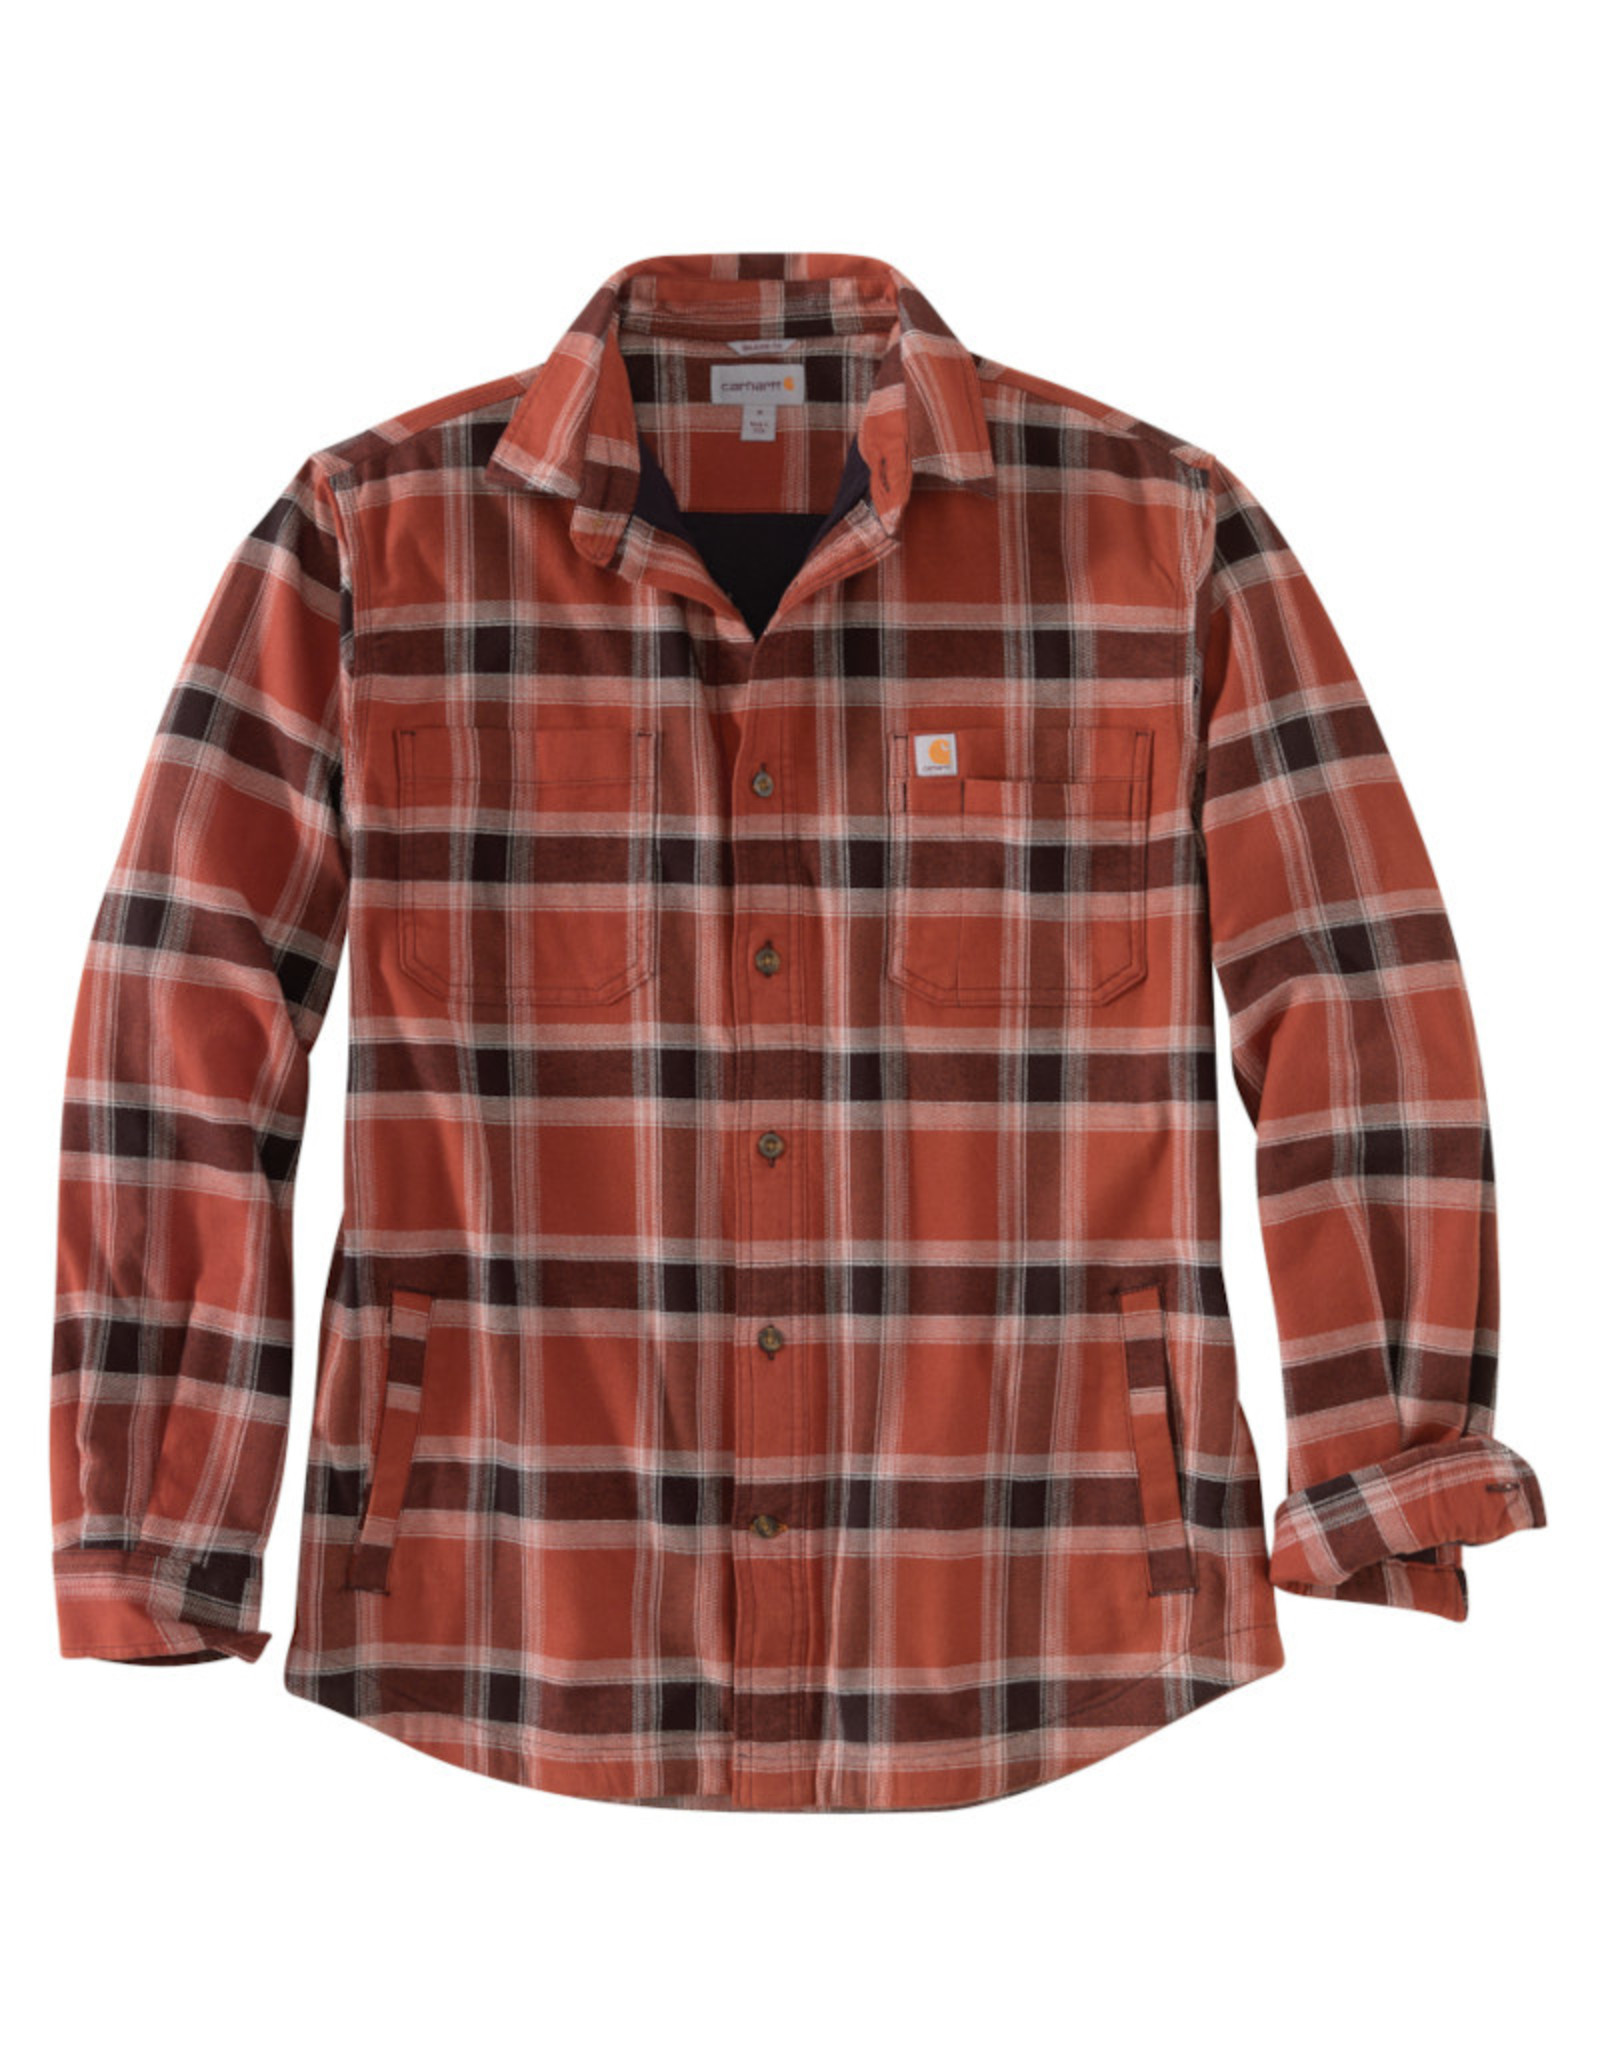 Carhartt Carhartt Fleece Lined Rugged Flex Flannel Shirt